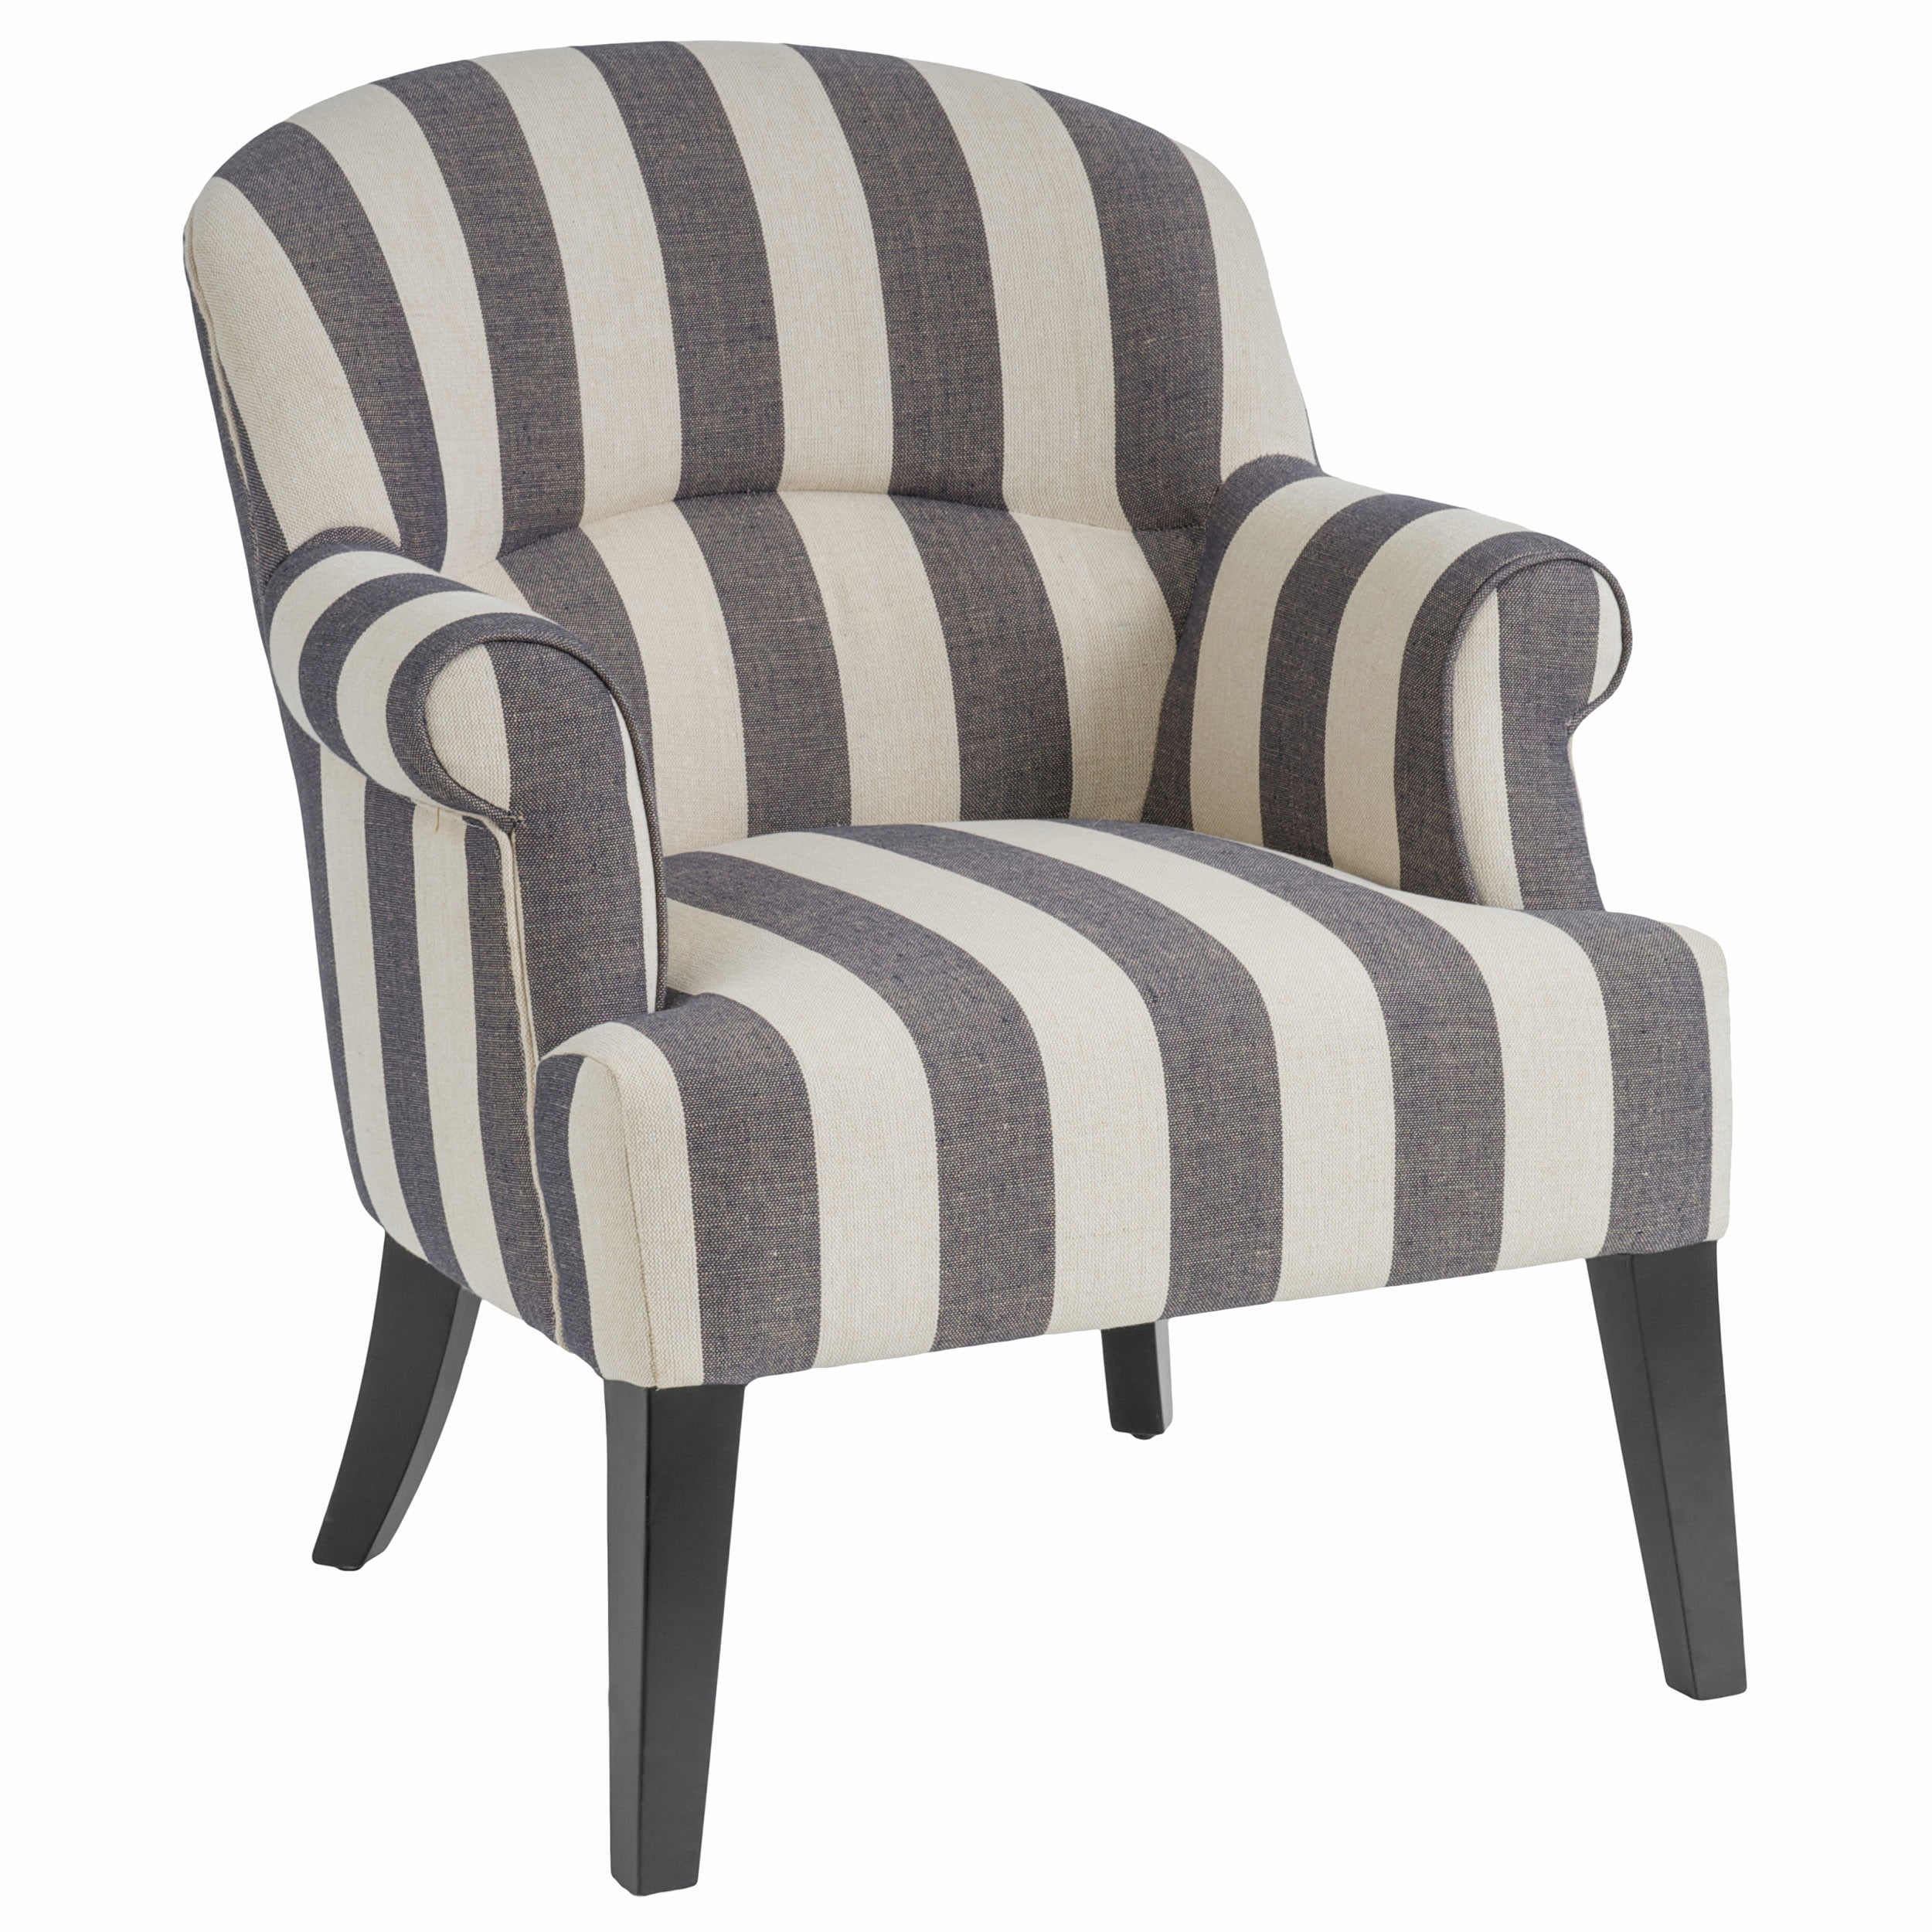 Abigale Blue Stripe Fabric Club Chair by GDF Studio